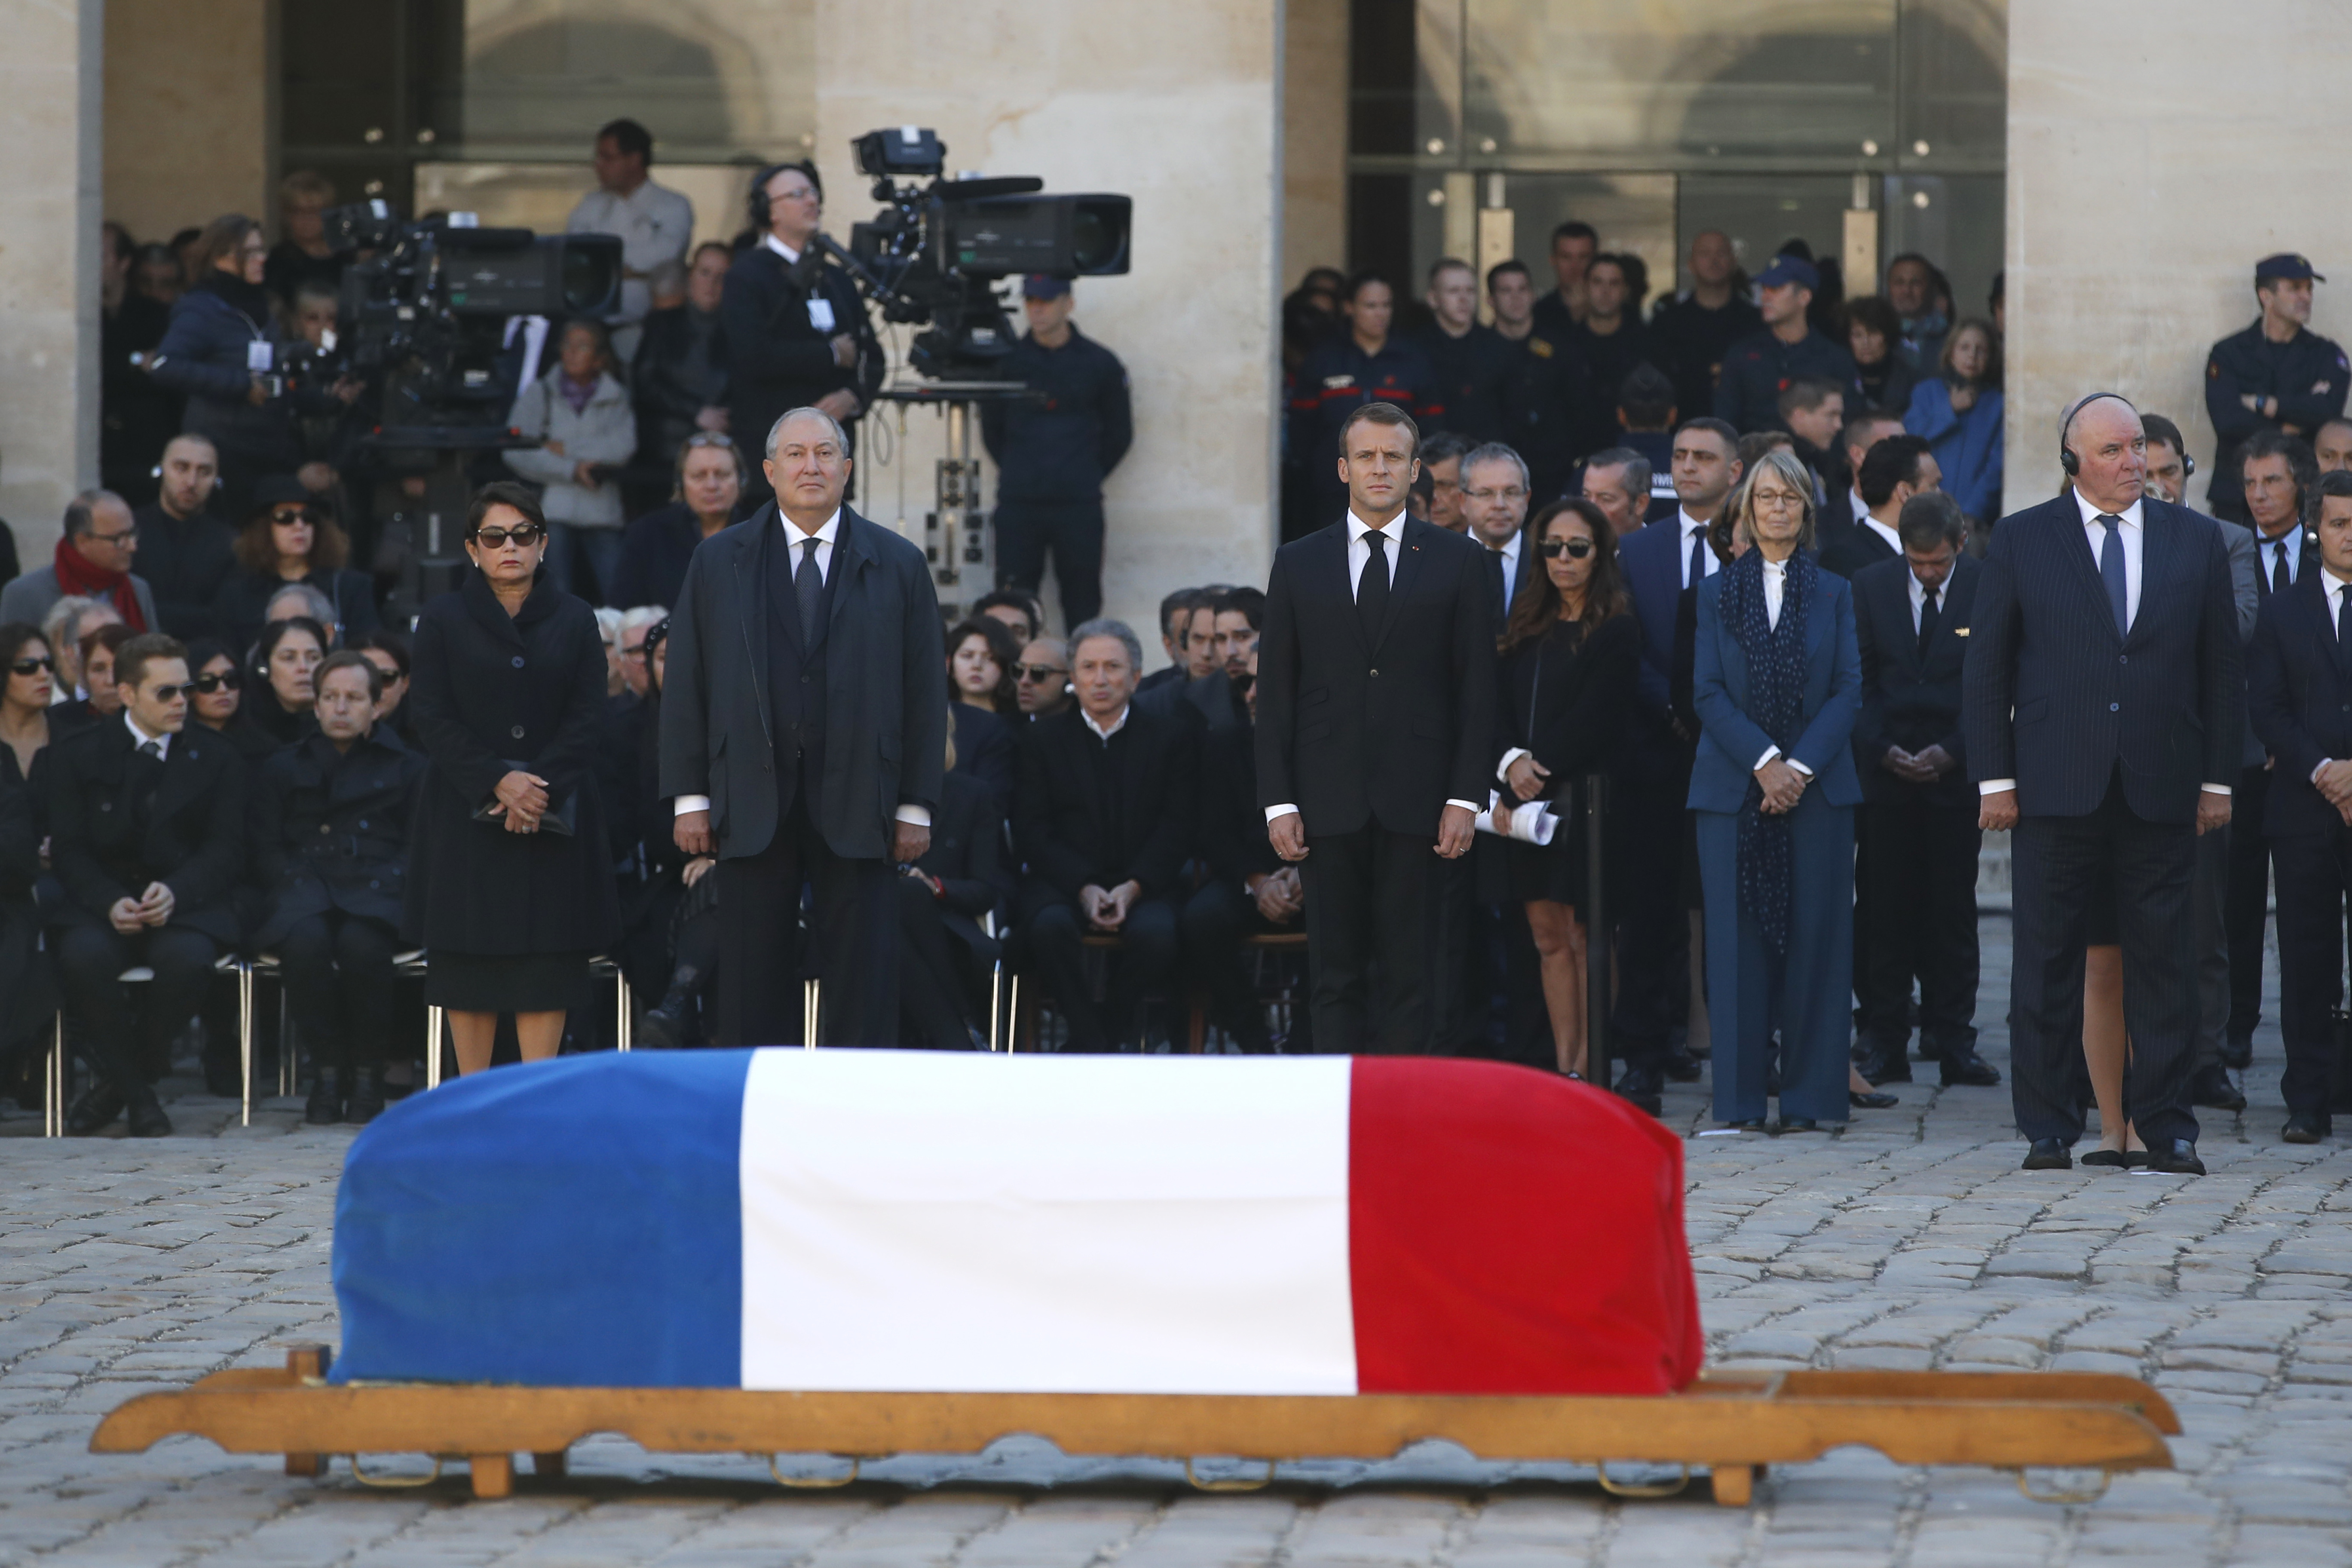 French President Emmanuel Macron stands behind the coffin of Charles Aznavour